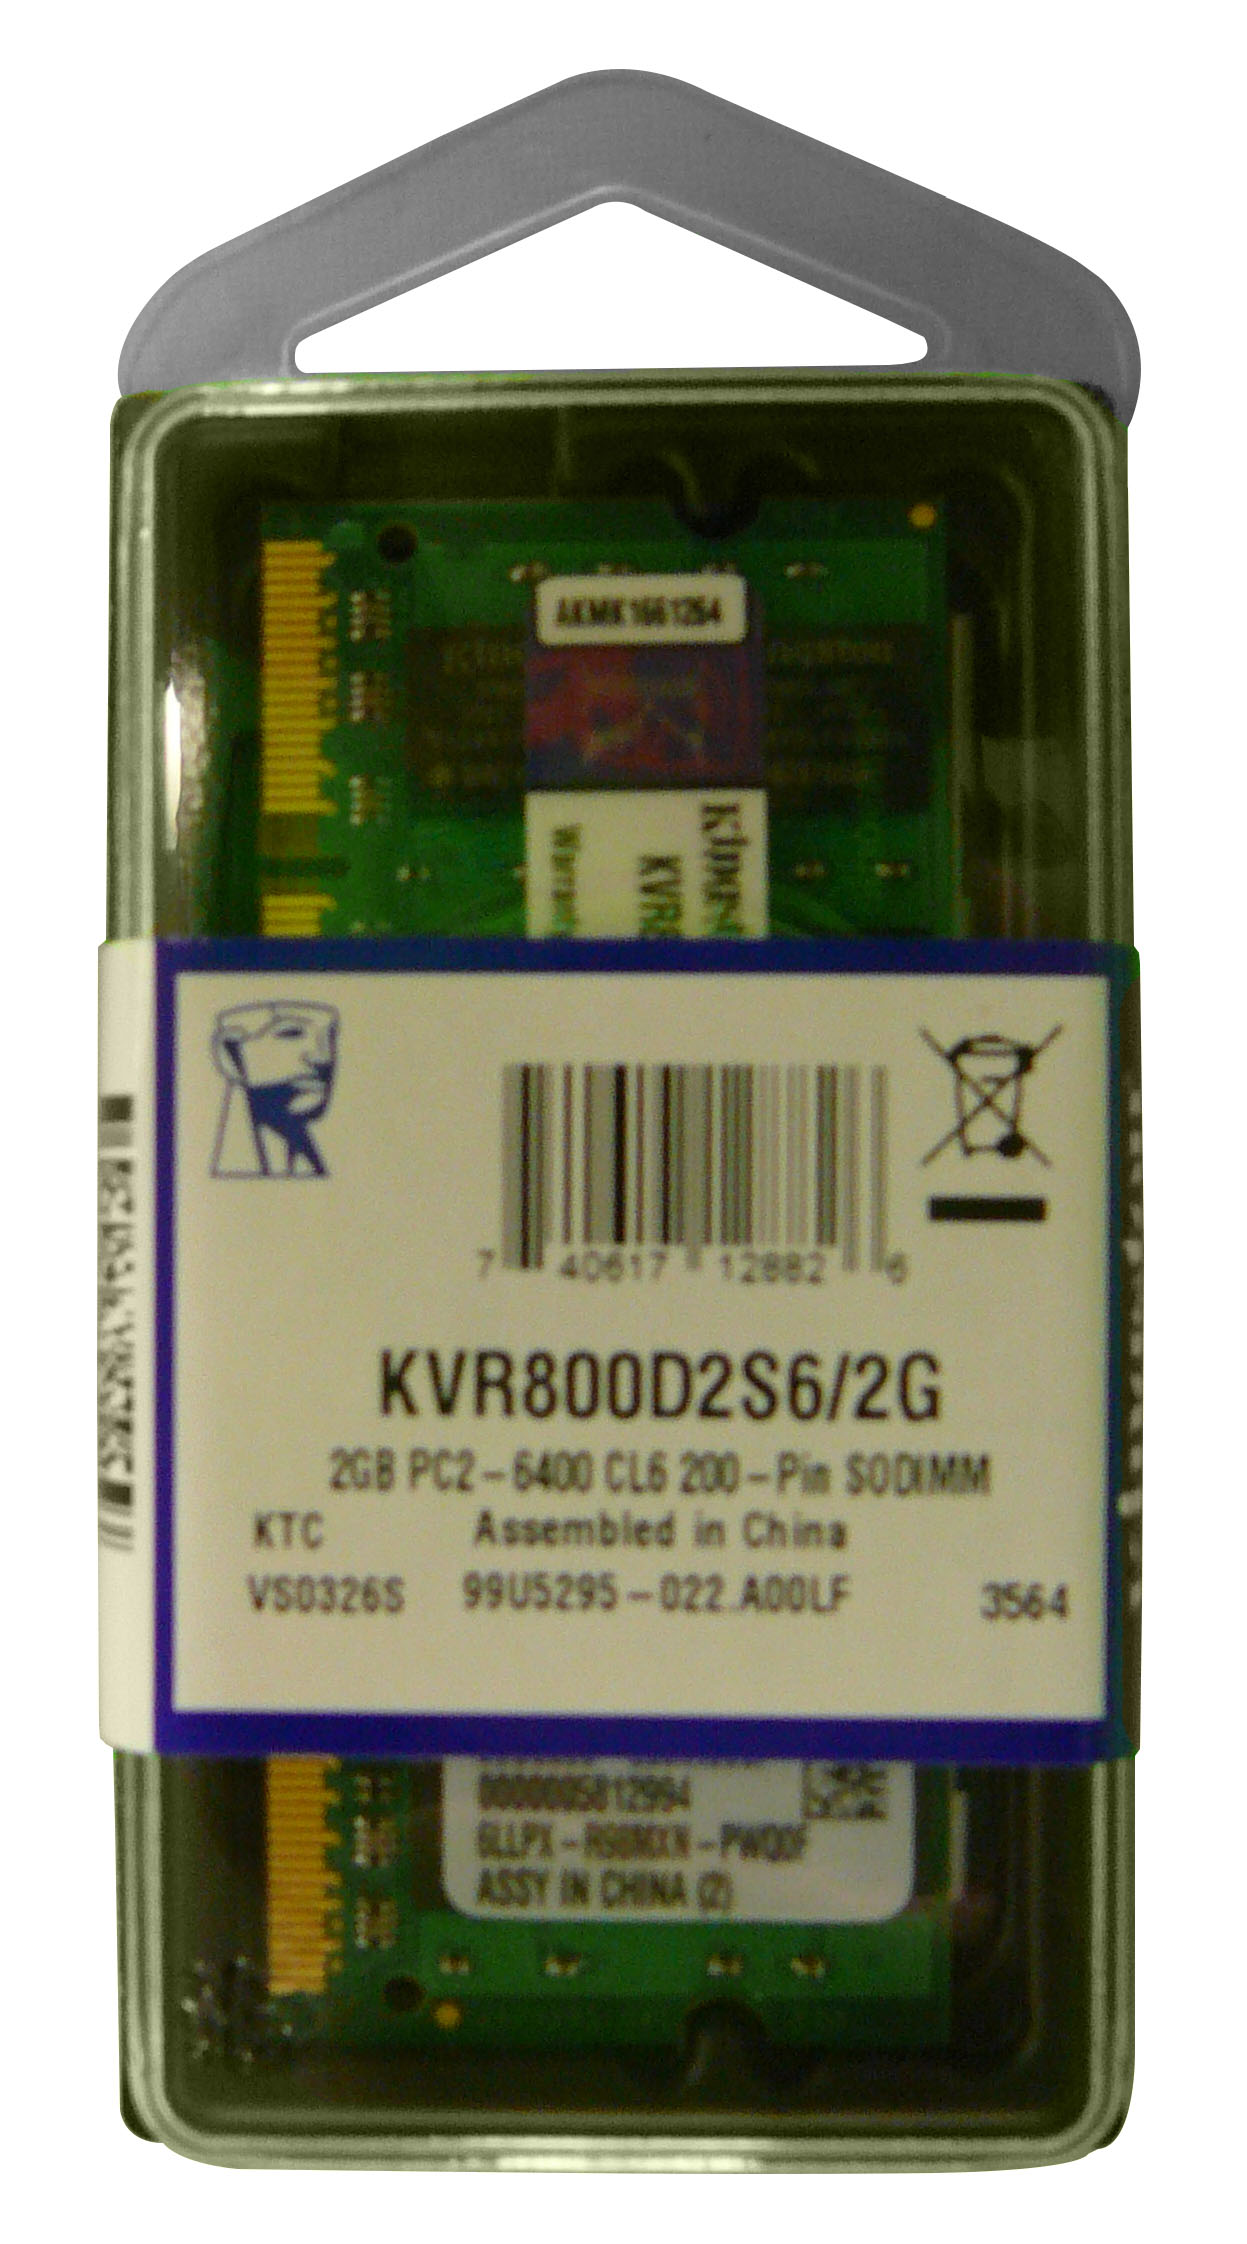 KVR800D2S6/2G Kingston 2GB PC2-6400 DDR2-800MHz non-ECC Unbuffered CL6 200-Pin SoDimm Dual Rank Memory Module